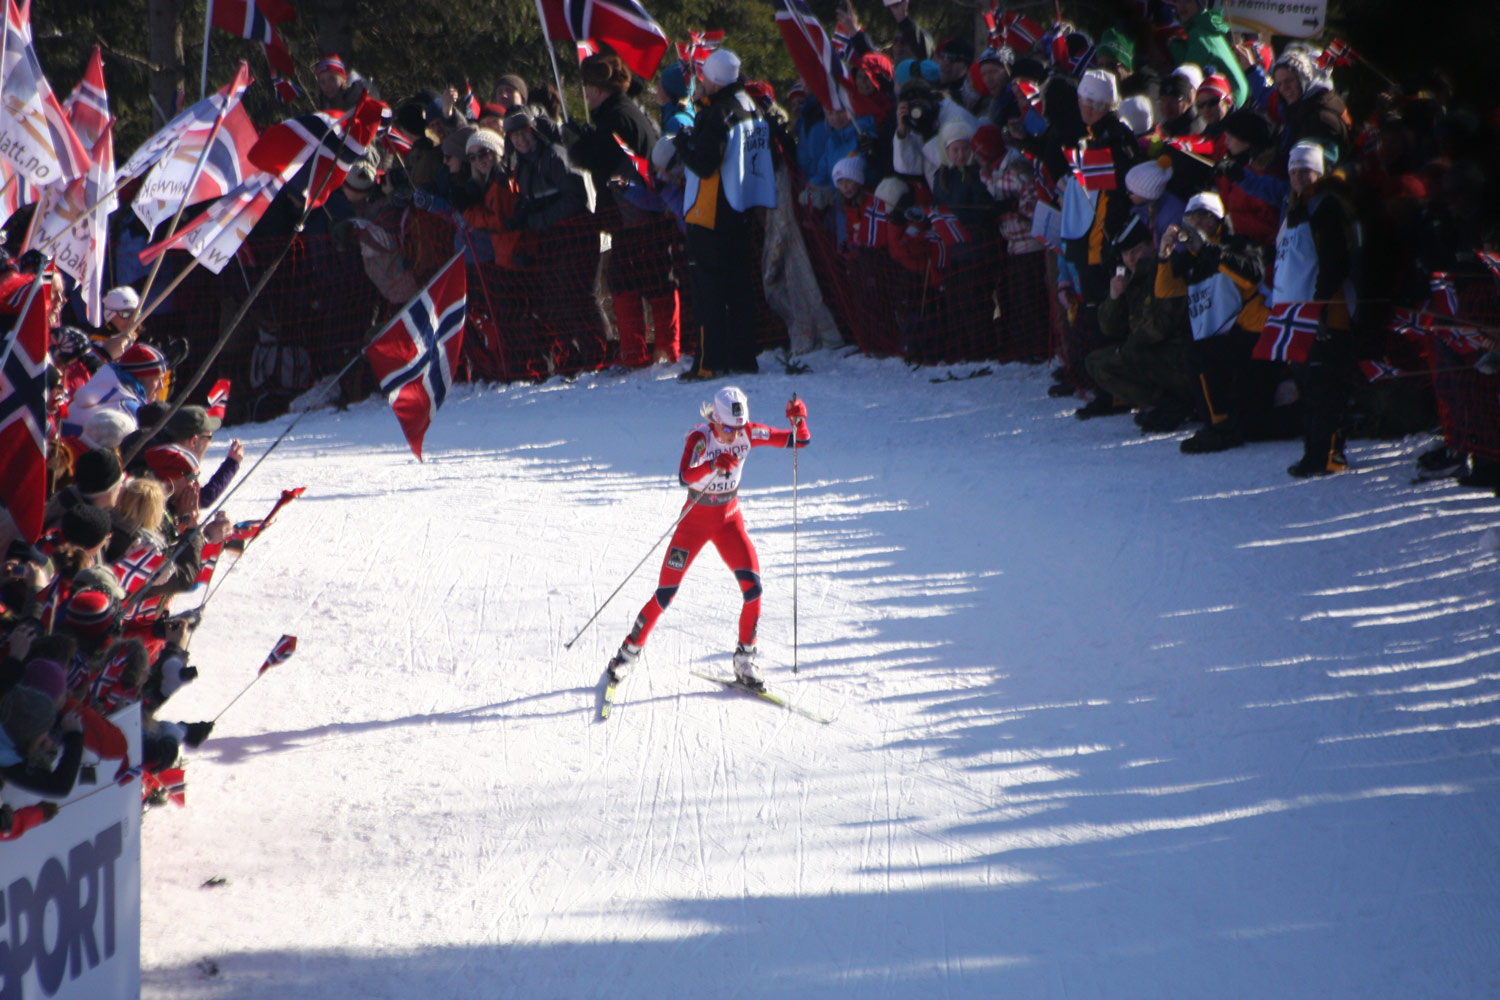 Therese Johaug, Norway, leads women's 30 km at the 17 km turn in World Ski Championship 2011, Oslo. Photographer: Bjoertvedt.  Wikipedia  -  Creative Commons   Attribution-Share Alike   3.0 Unported   ,   2.5 Generic   ,   2.0 Generic   and   1.0 Generic   license.